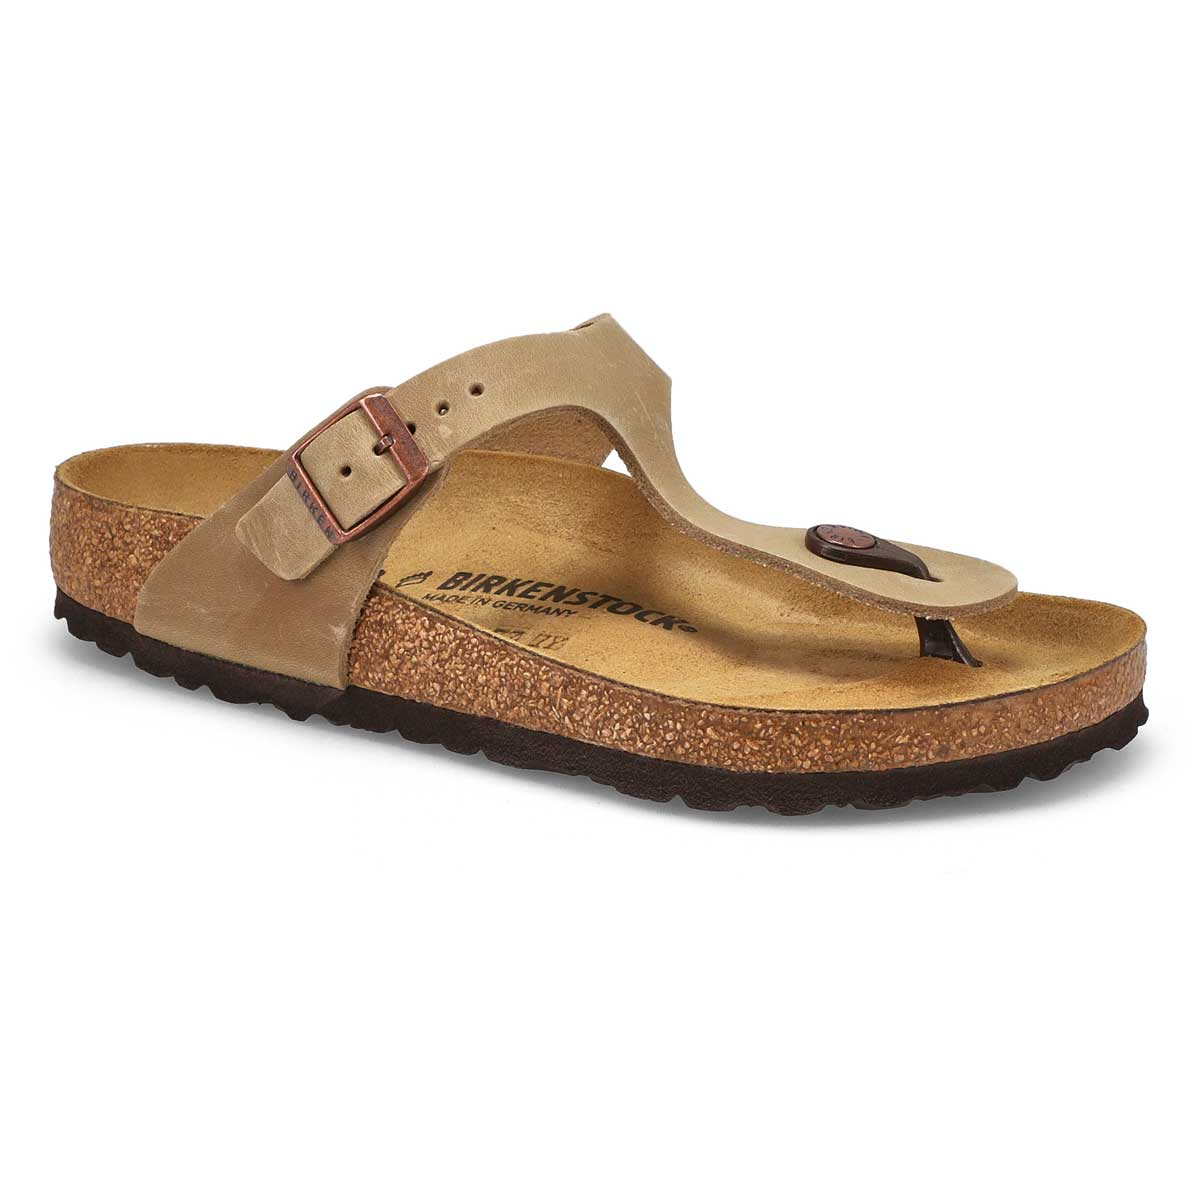 Lds Gizeh tobacco leather sandal